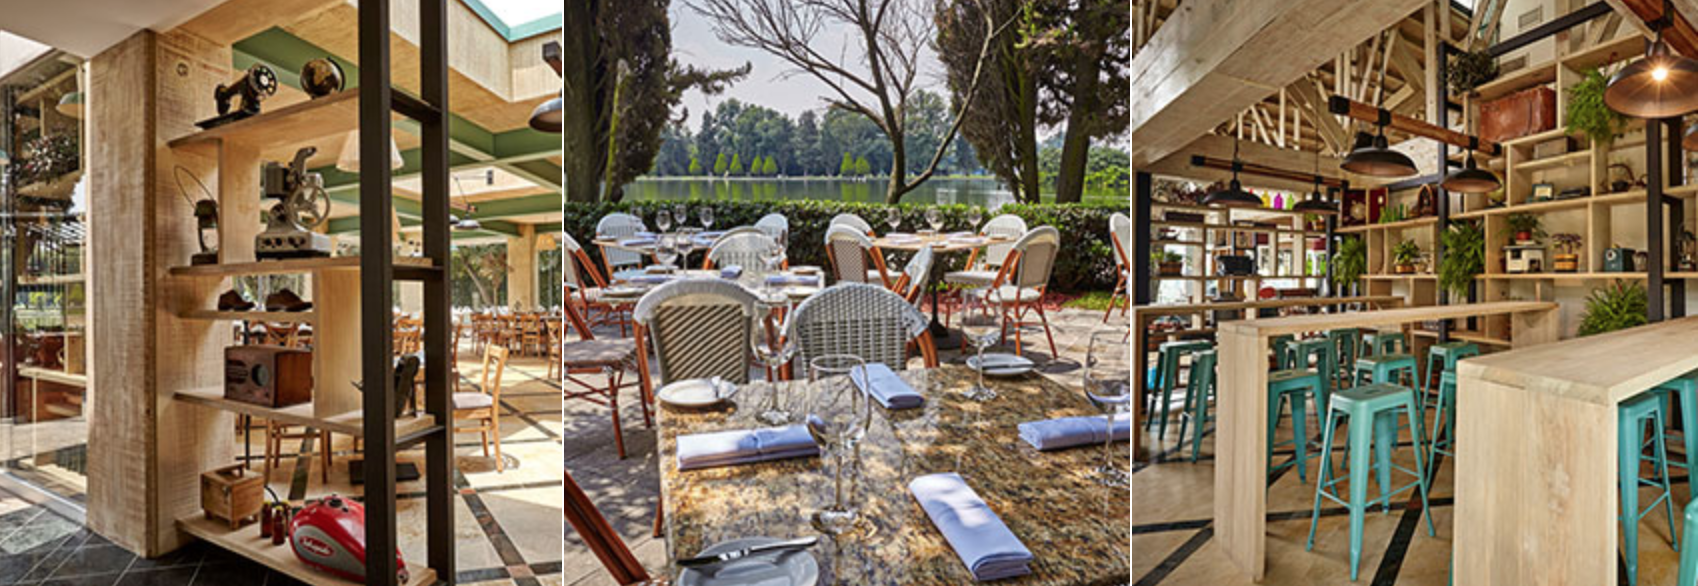 Bistro Chapultepec... Ok so you'll butcher the name but the views are worth the embarrasment.